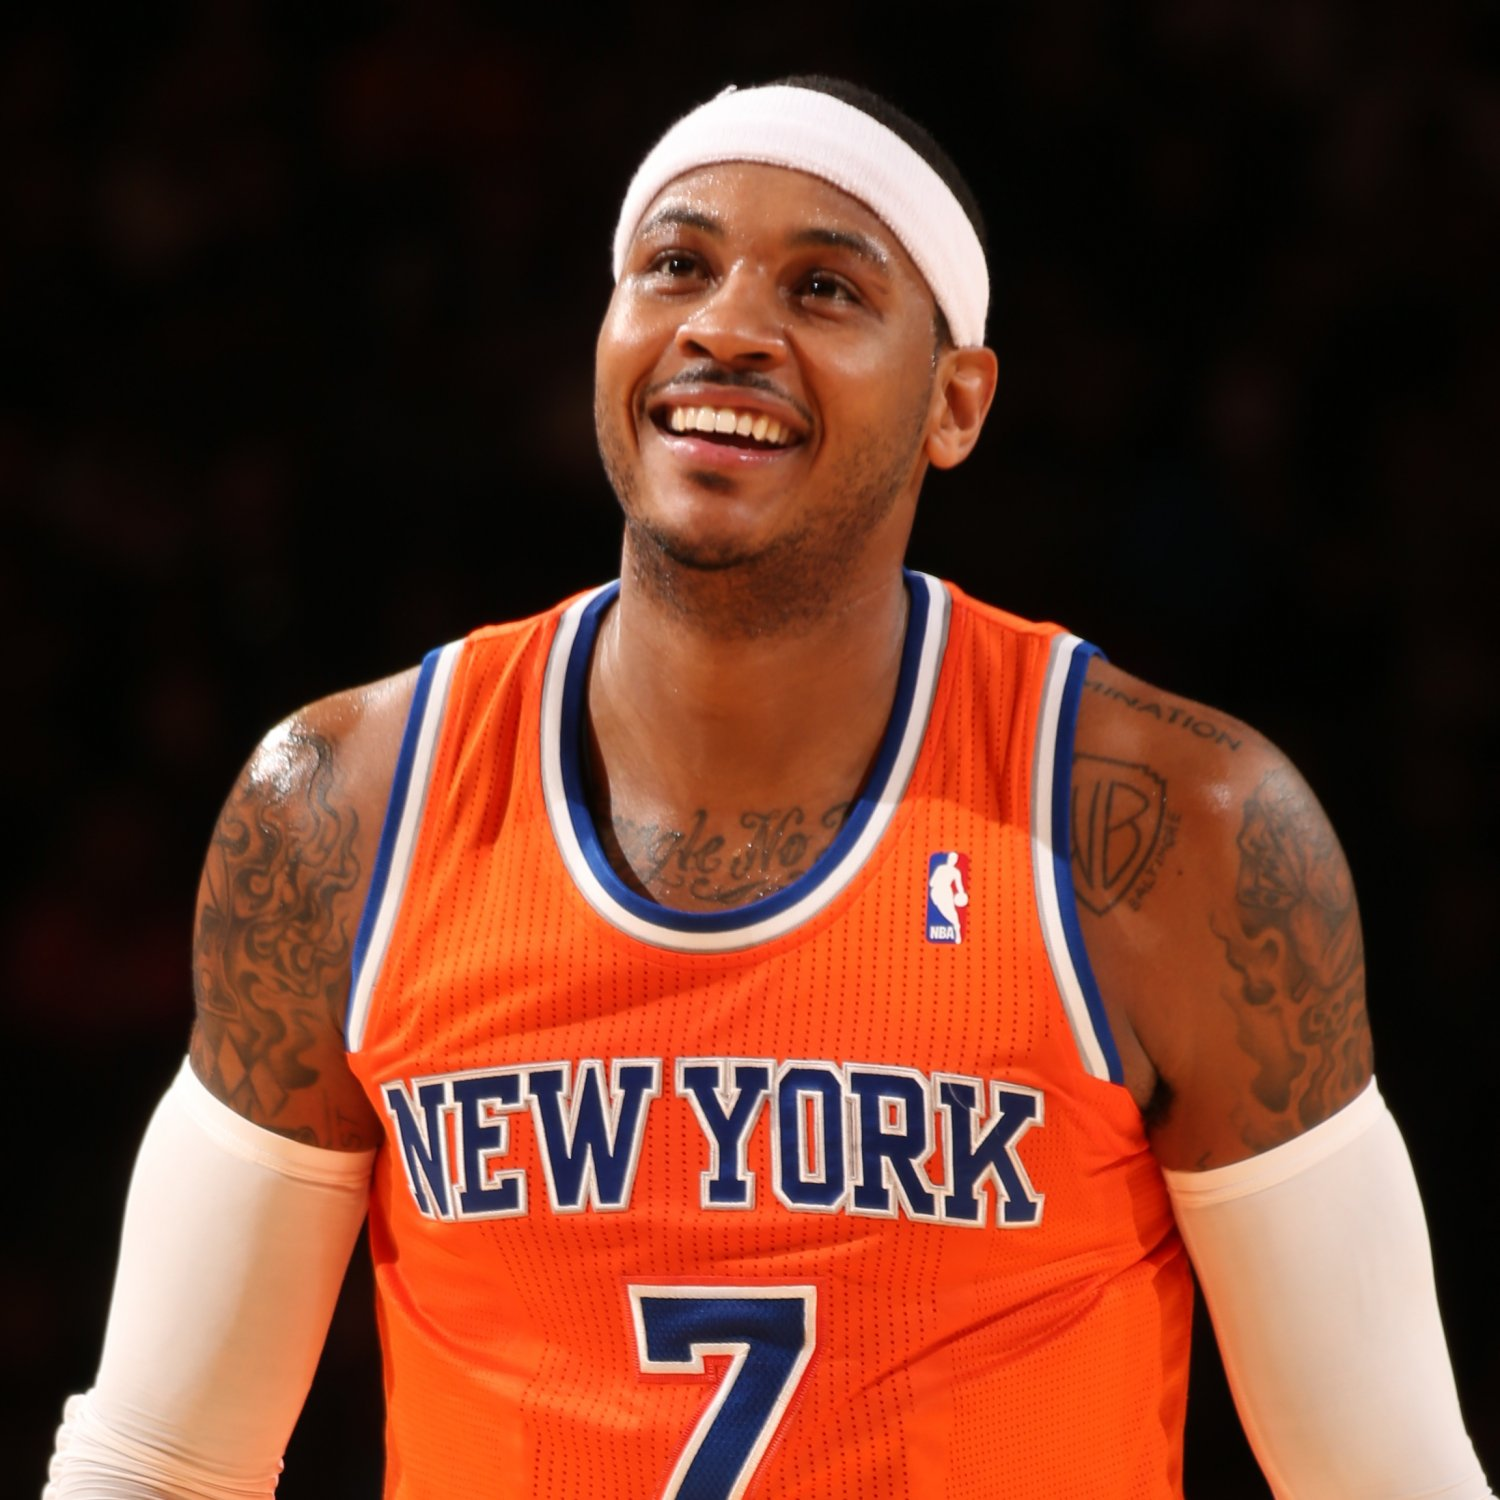 Basketball Player Carmelo Anthony - age: 36